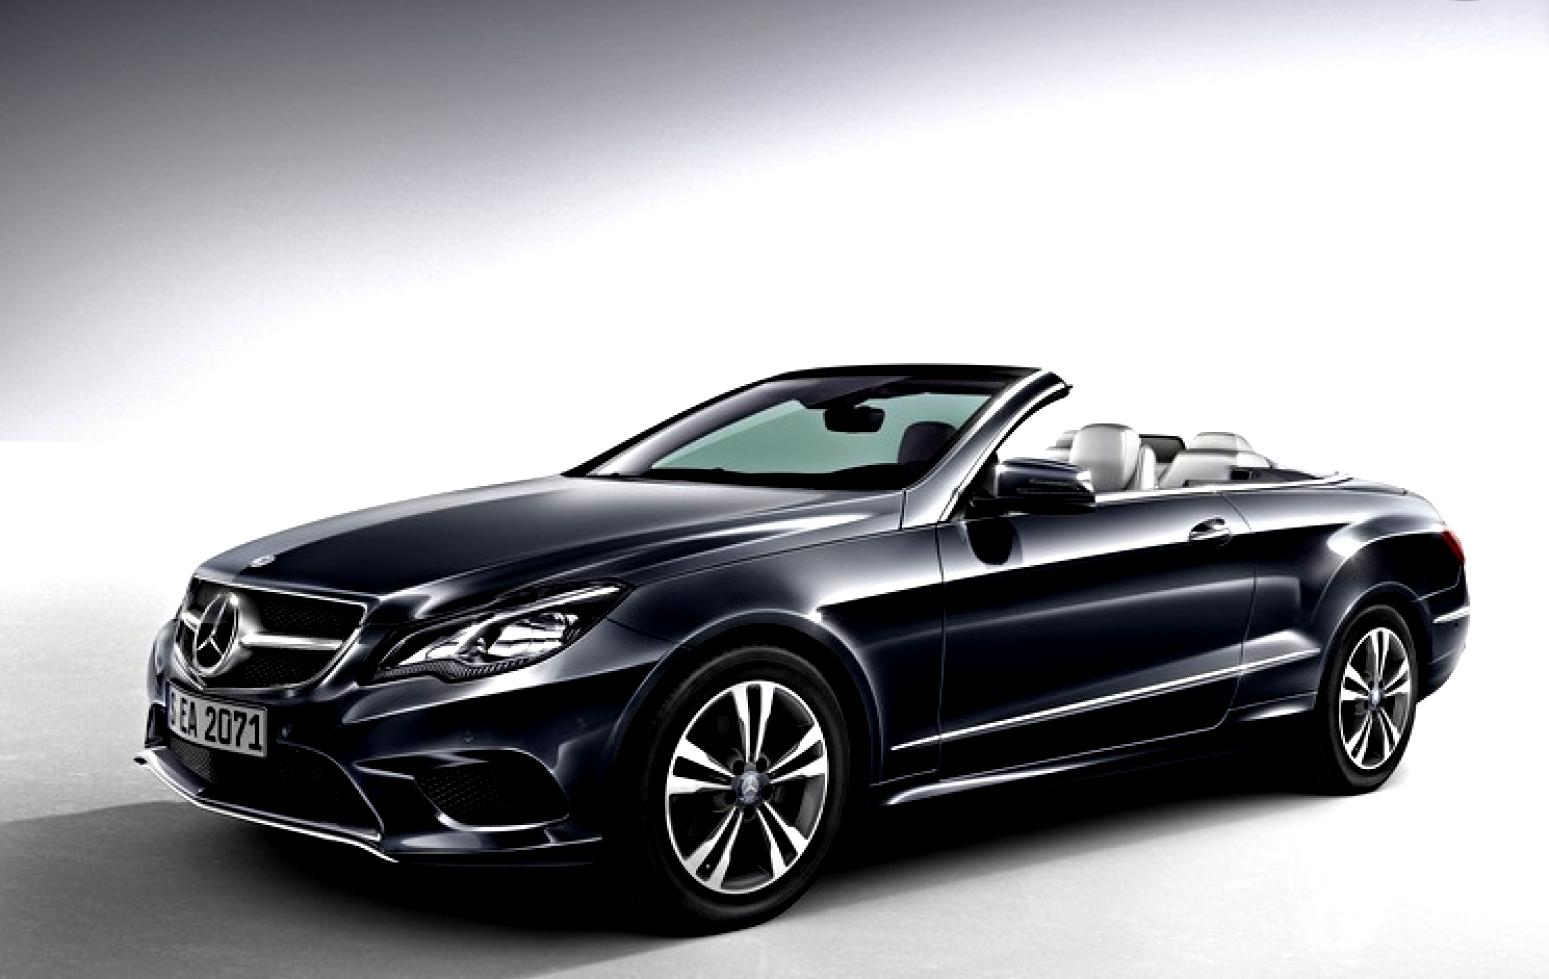 Mercedes benz e klasse cabriolet a207 2013 on for 2013 mercedes benz e350 cabriolet